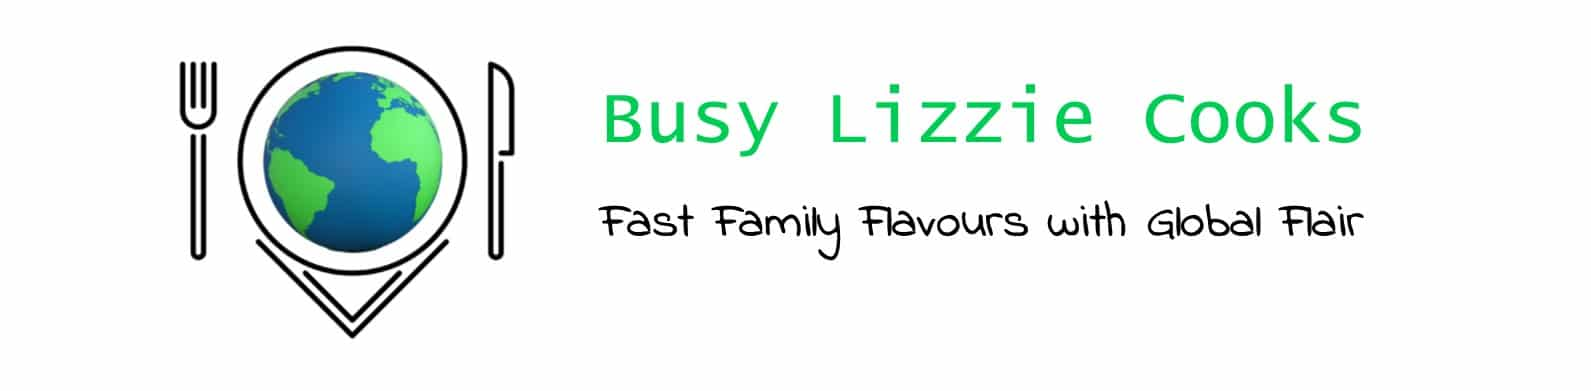 Busy Lizzie Cooks